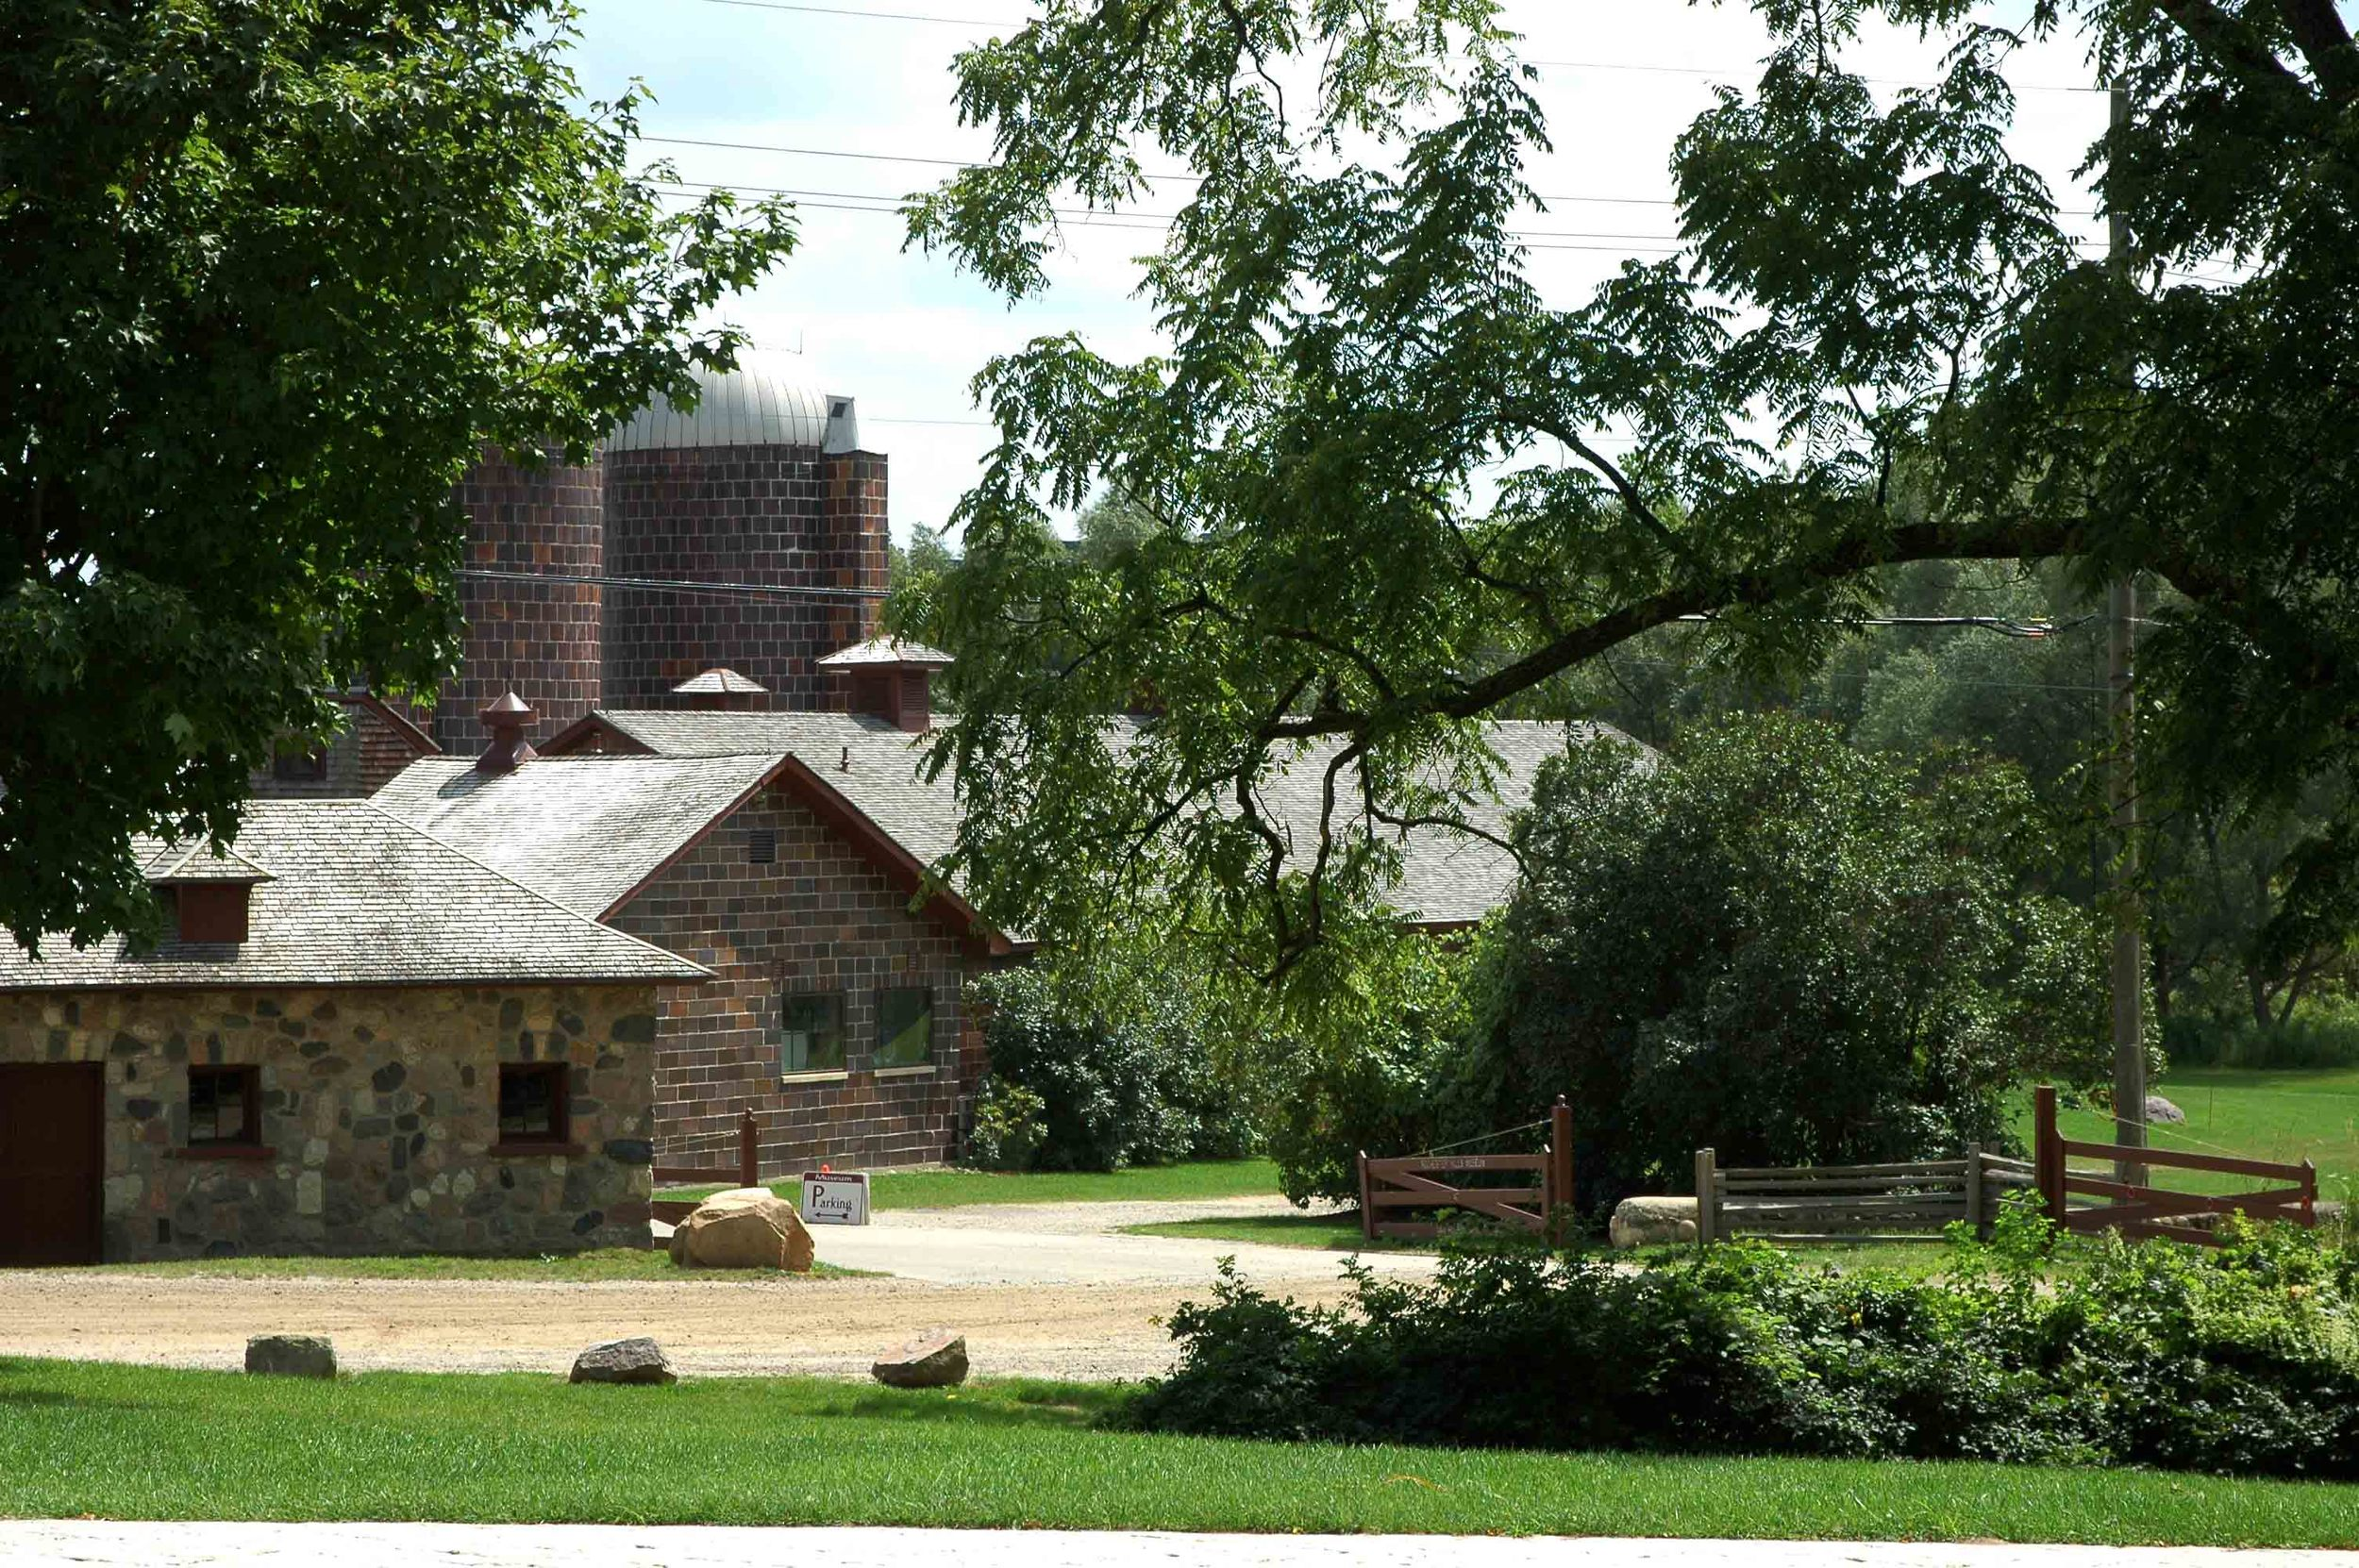 Milk House and Barn from the front yard.